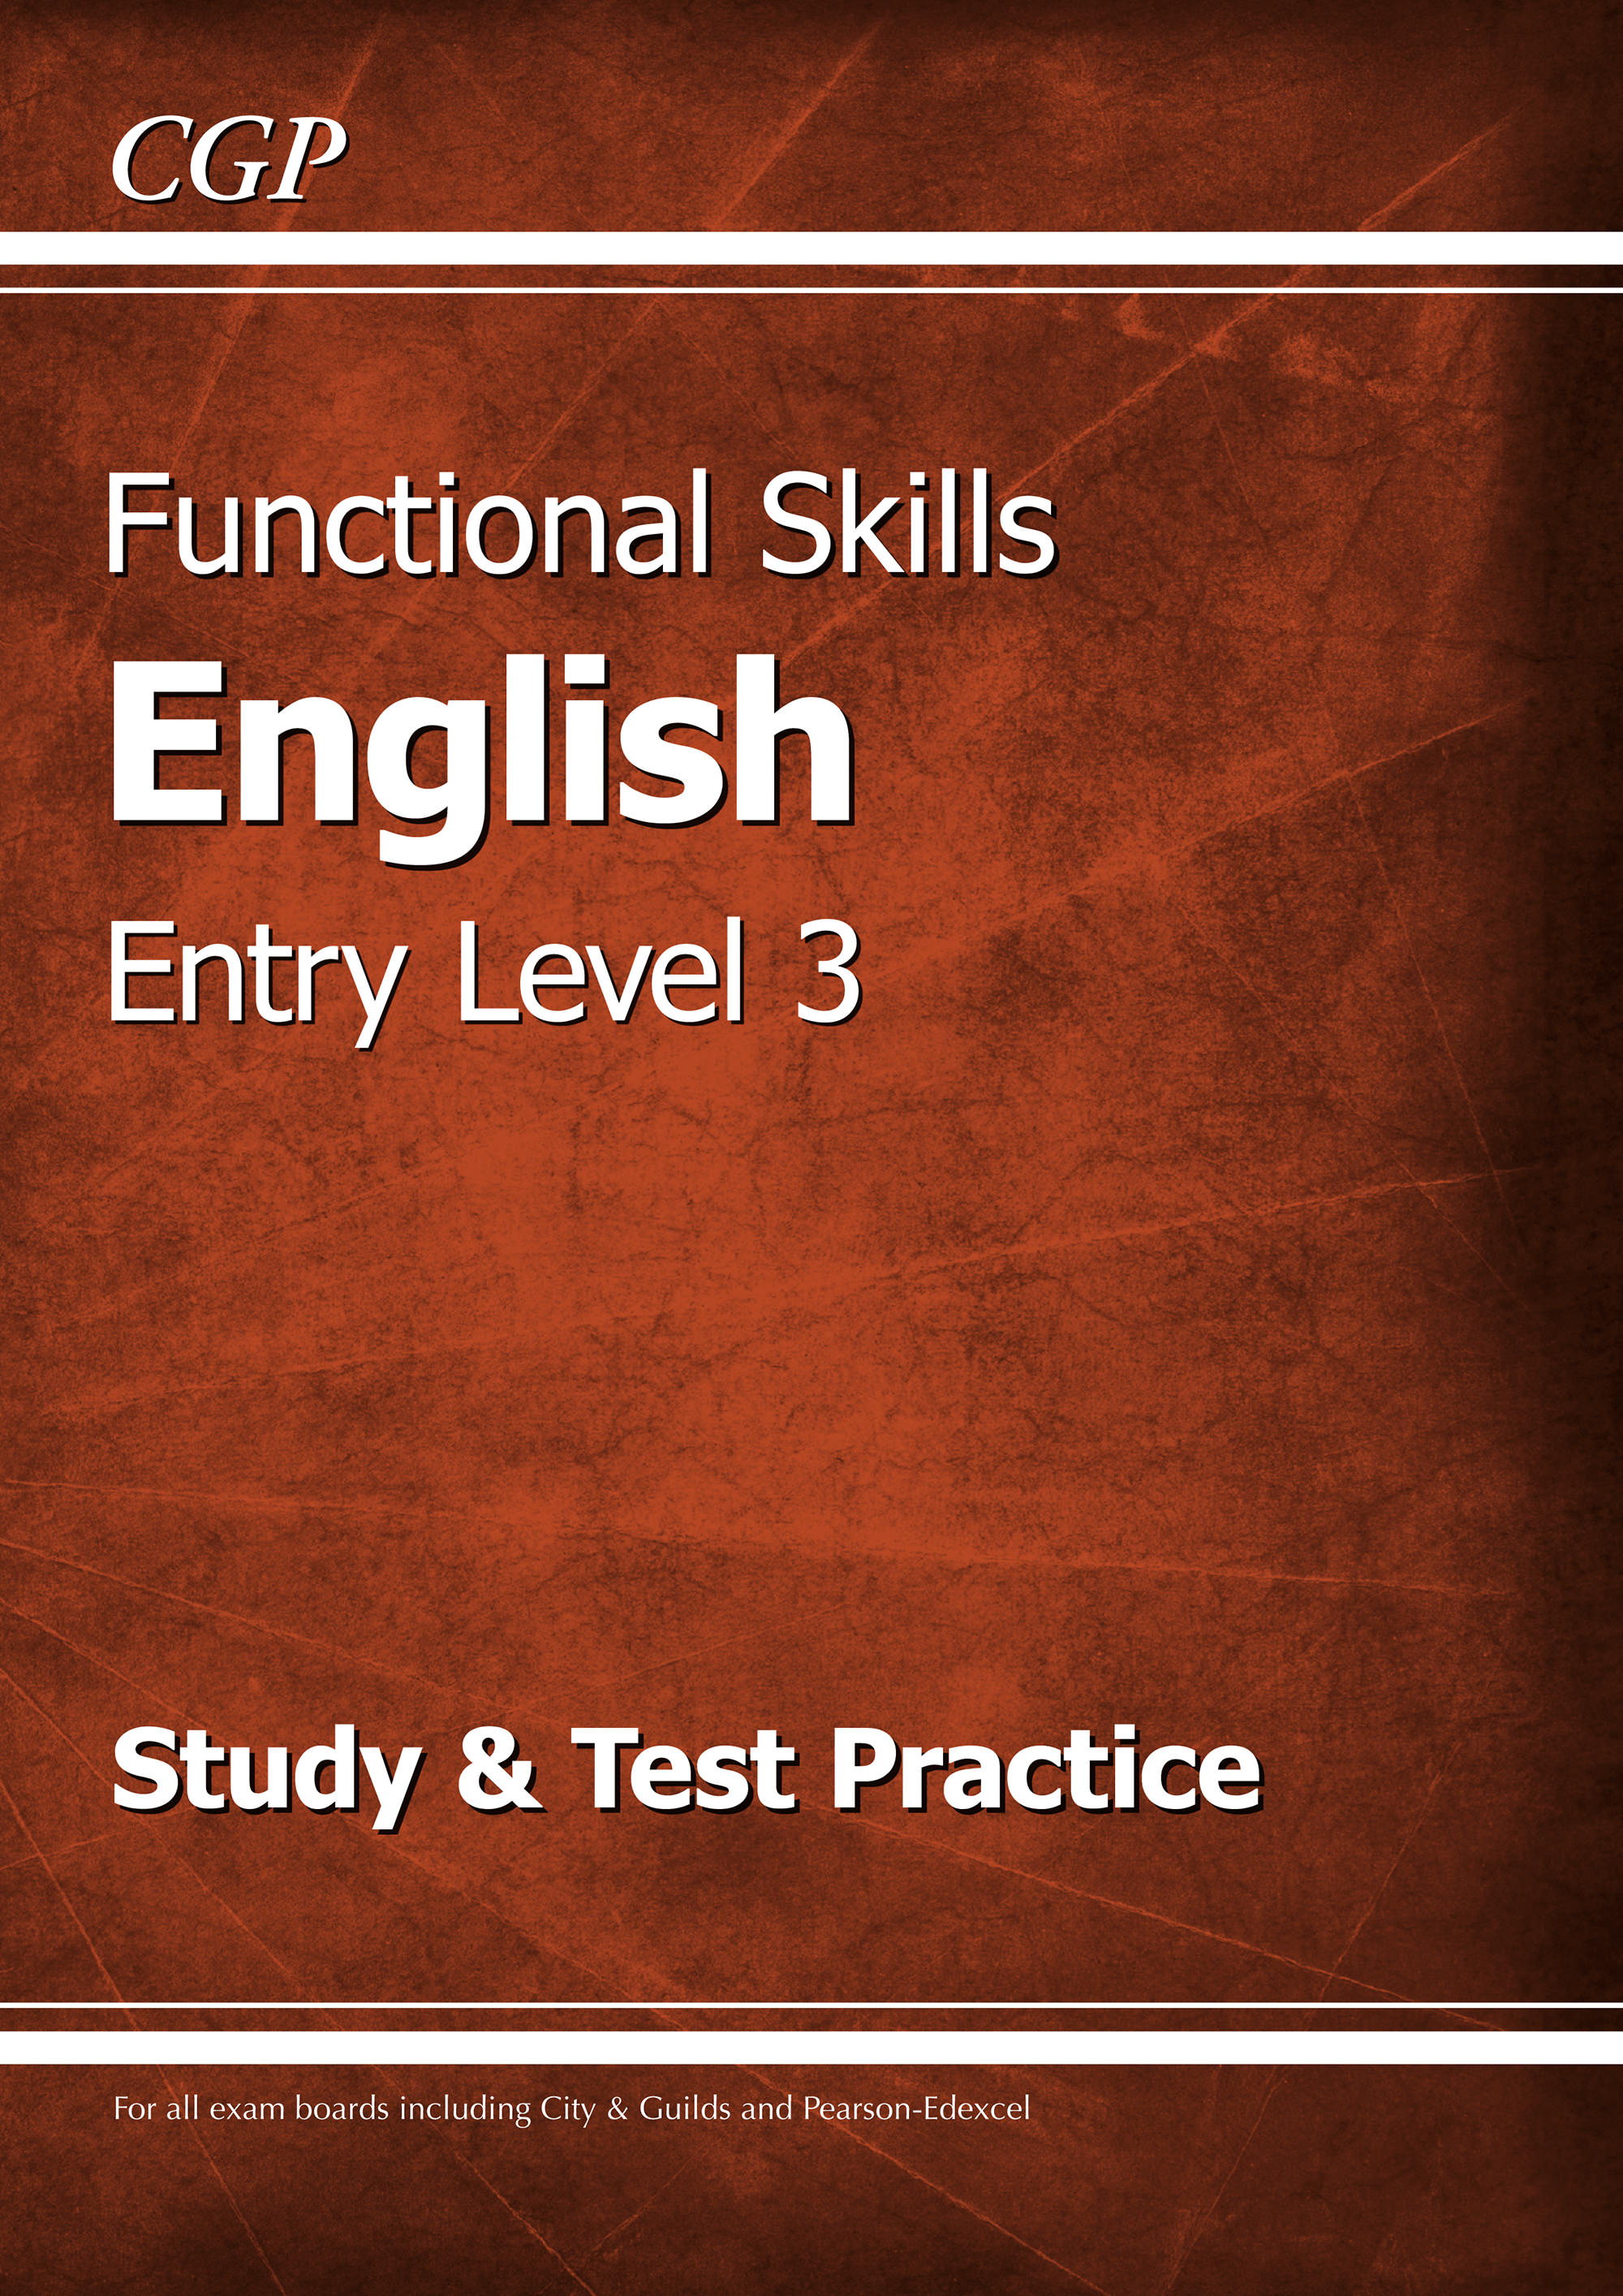 E3SRA2 - Functional Skills English Entry Level 3 - Study & Test Practice